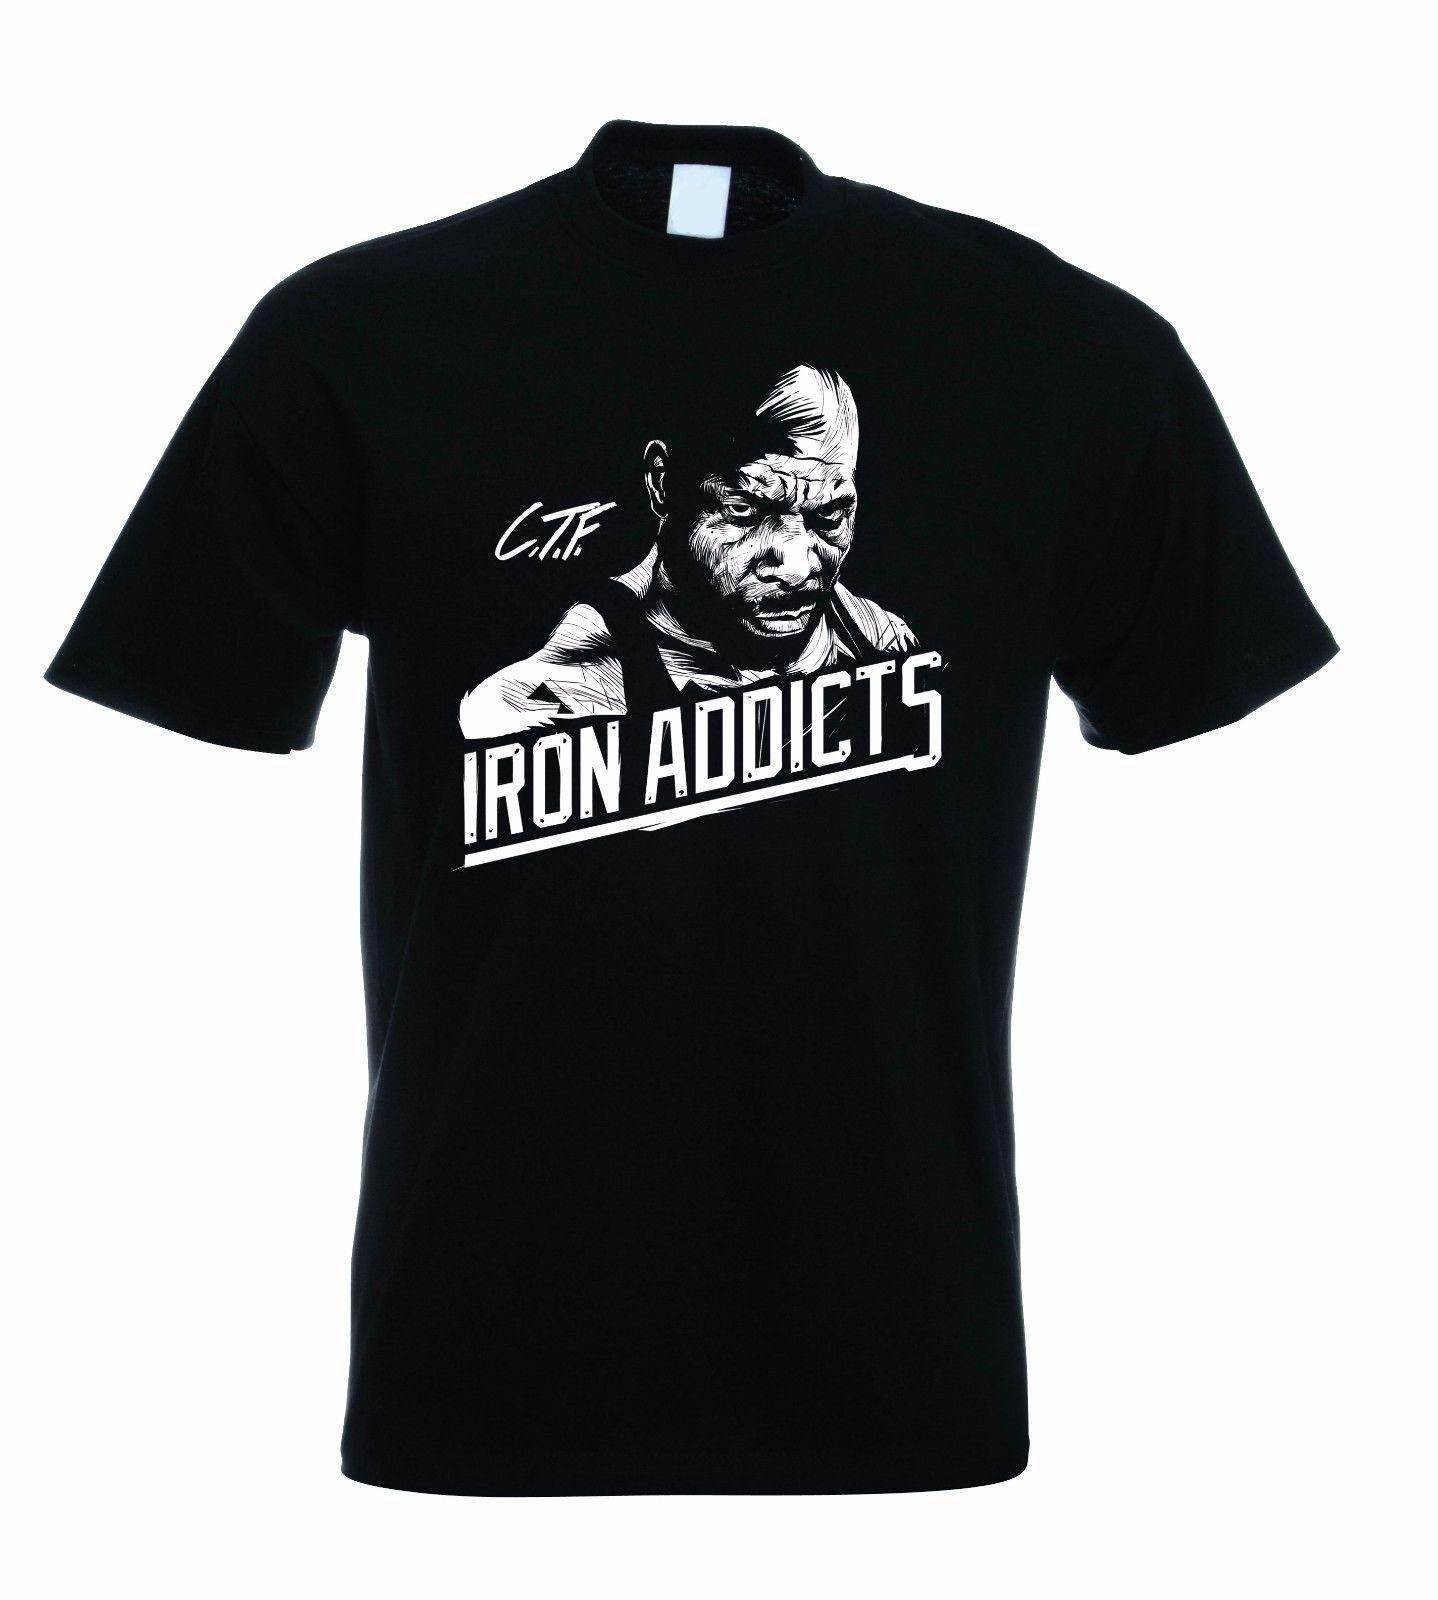 9d411100af6 CT FLETCHER IRON ADDICTS T SHIRT GYM BODYBUILDING MMA Funny Unisex Casual  Tee Gift Online Tee Shirts Shopping Funniest Tee Shirts From Tshirtsinc